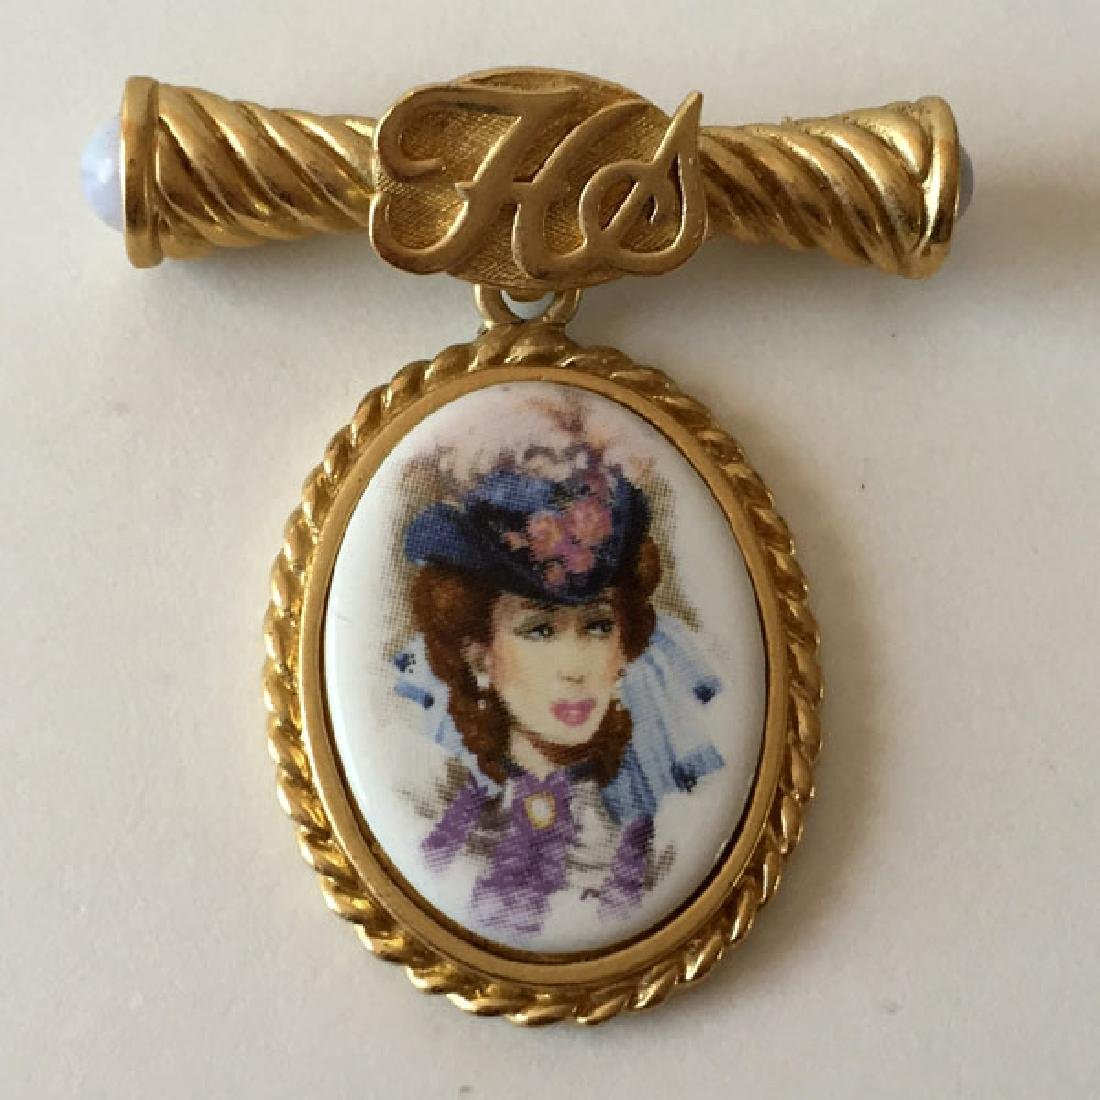 AVON: Vintage gold plated twisted medal shape brooch -